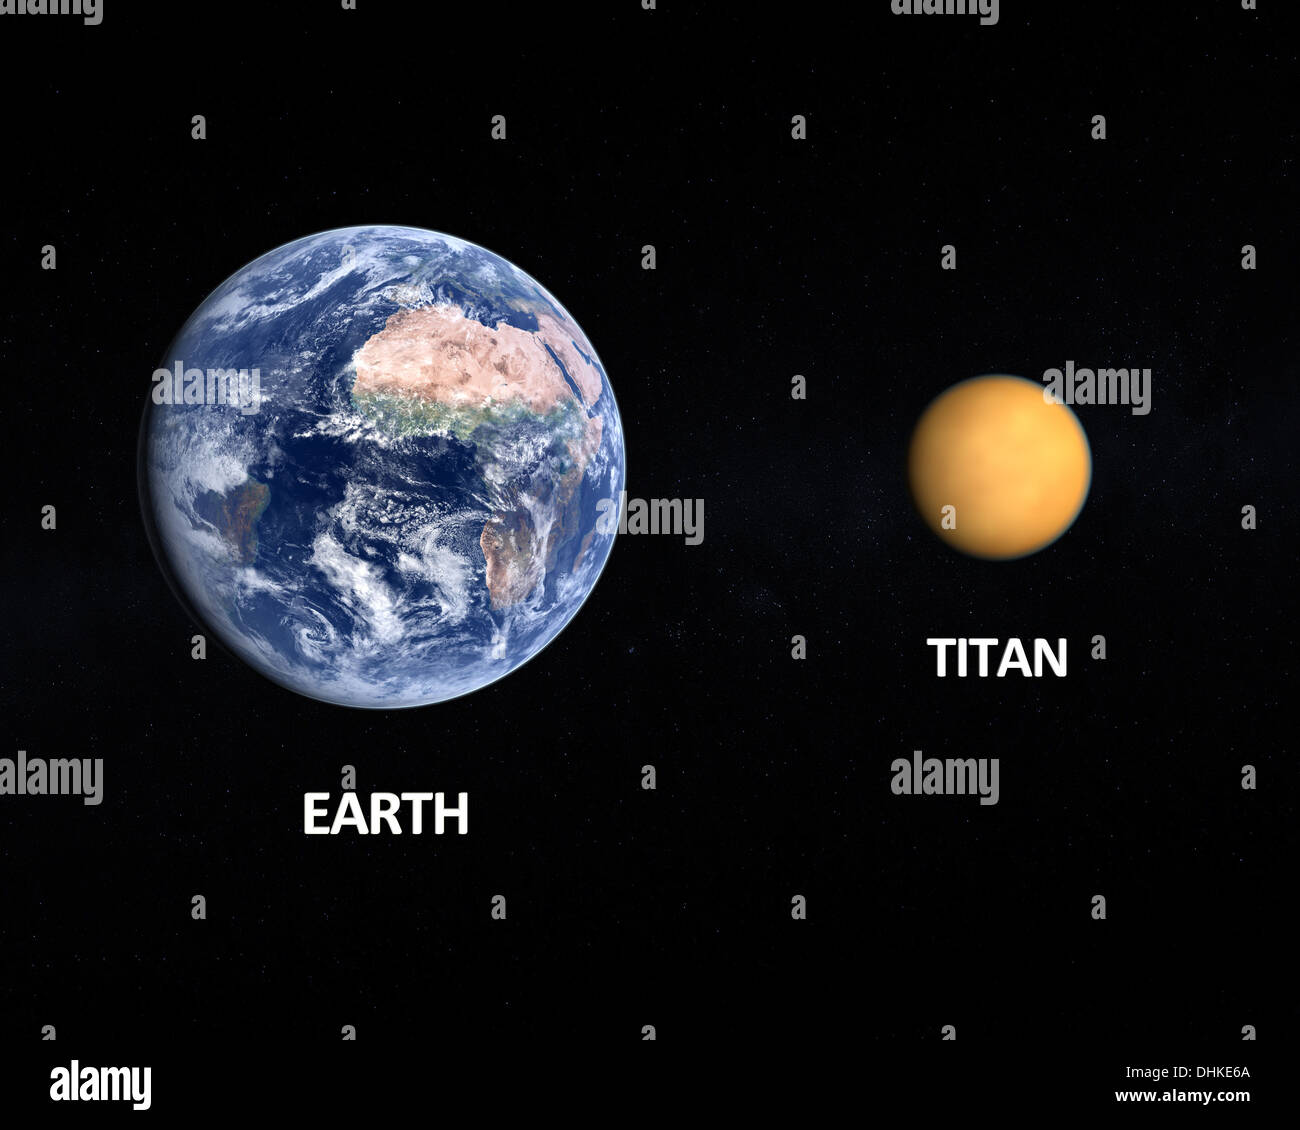 A comparison between the planet Earth and the Saturn Moon ...